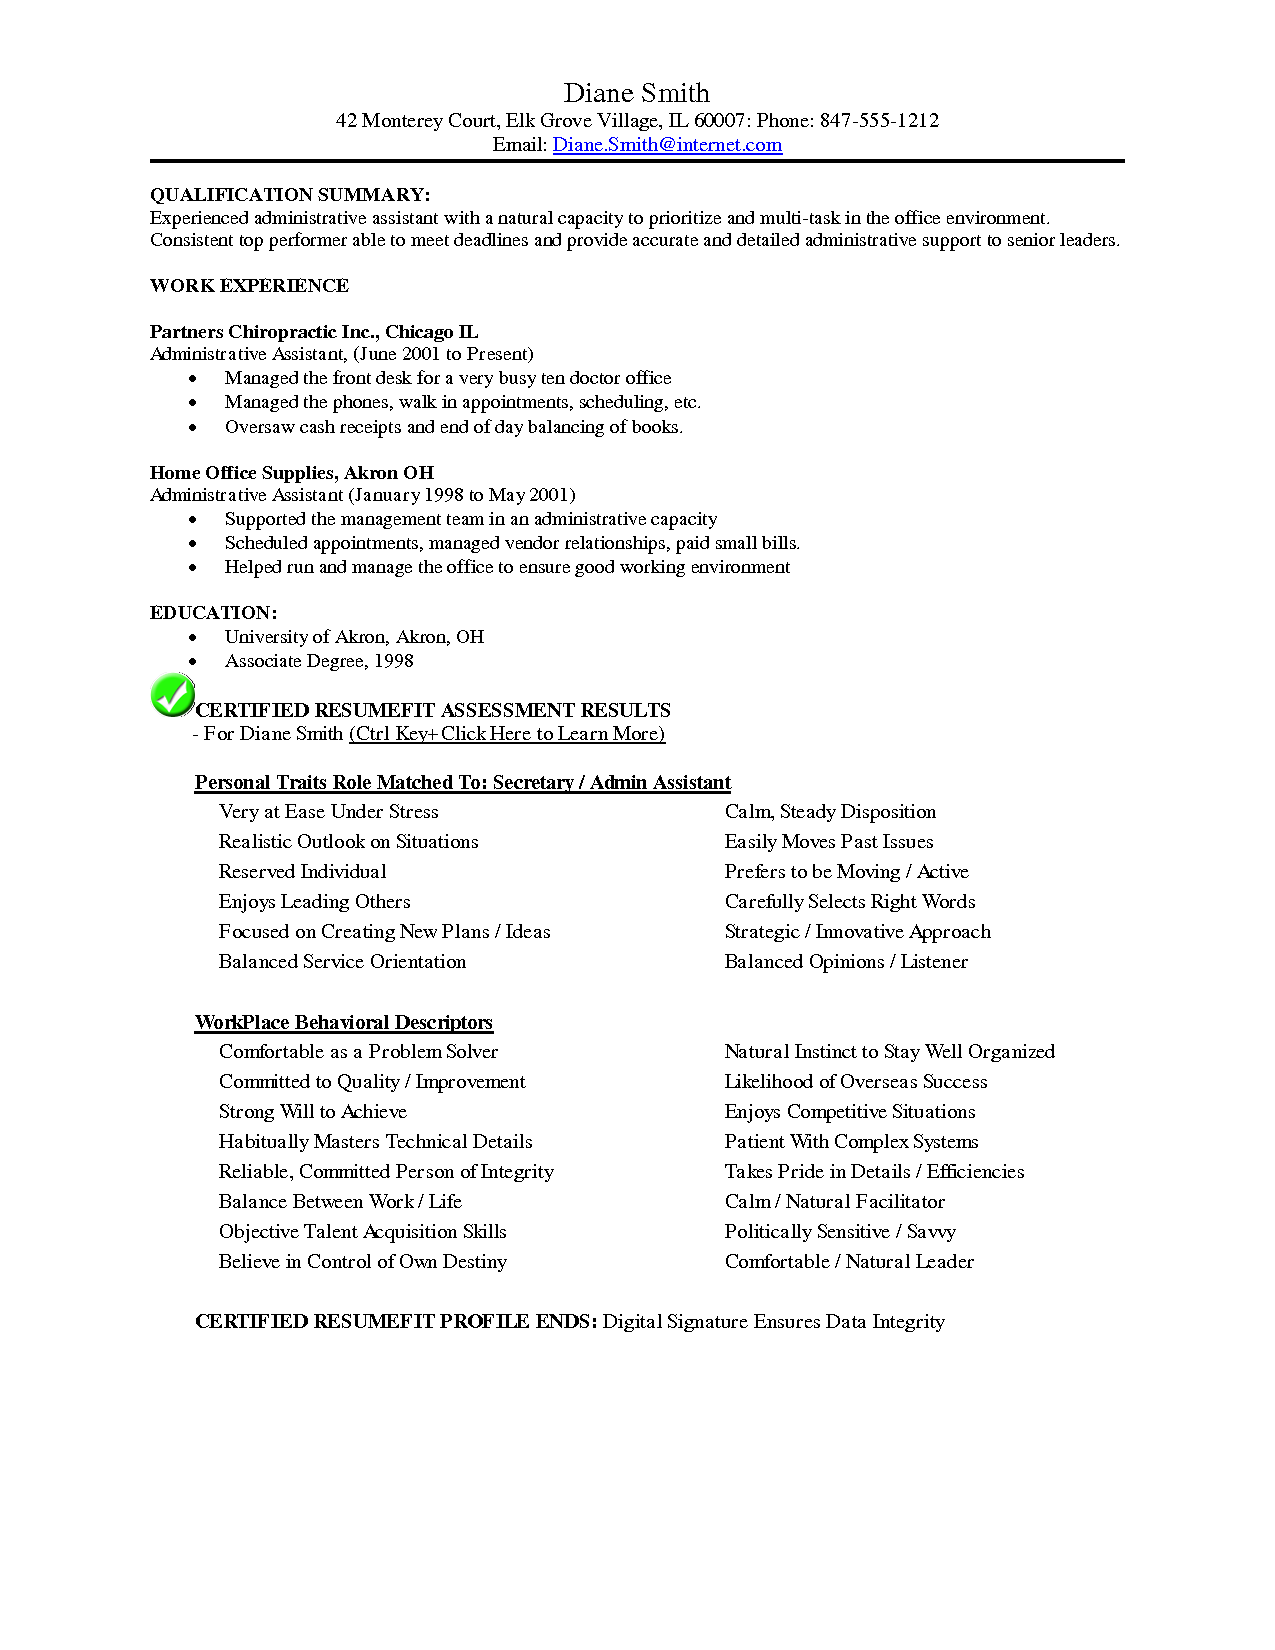 Sample Resume For Office Manager Position Chiropractic Resume Example  Resumes  Pinterest  Resume